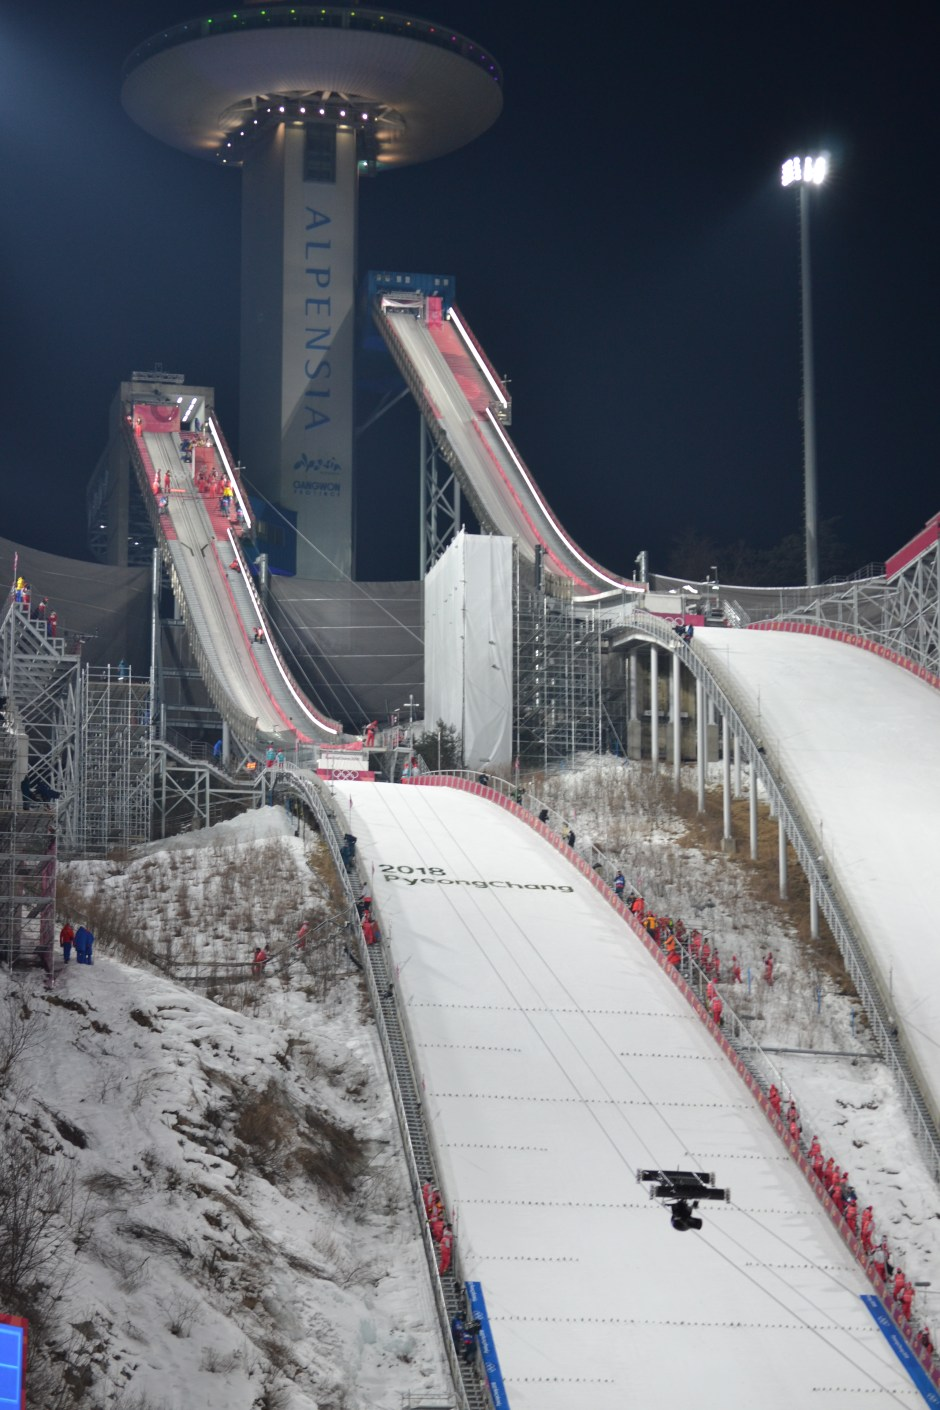 Alpensia Ski Jumping Venue !